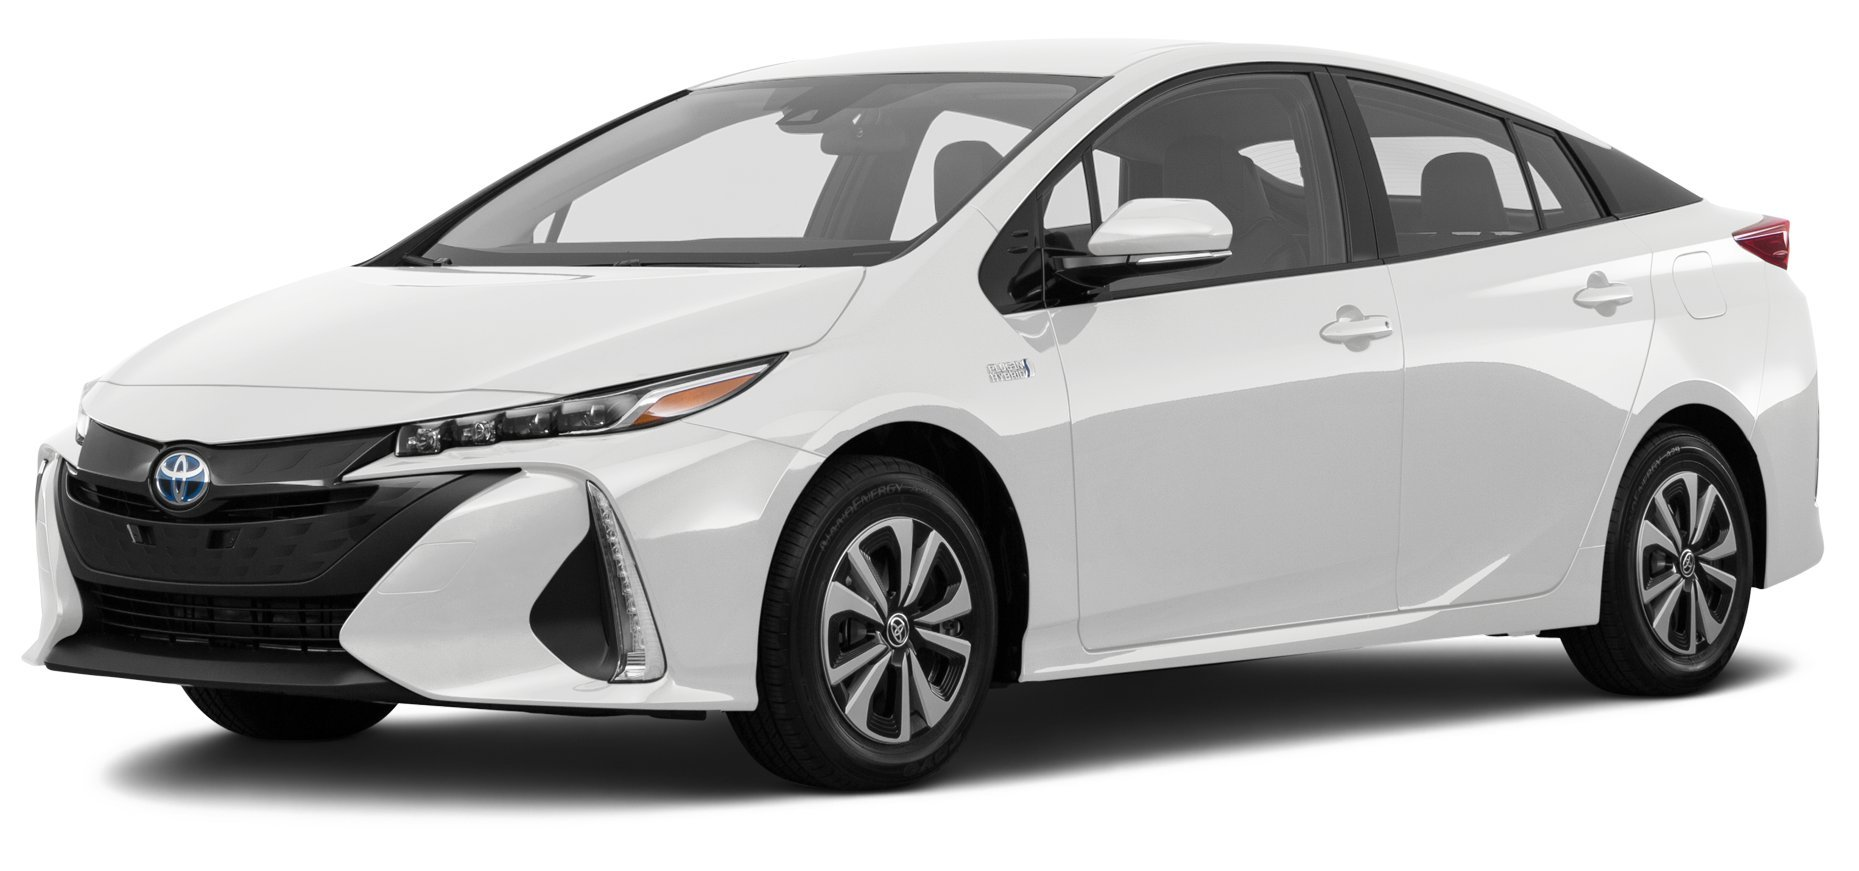 2017 toyota prius prime reviews images and specs vehicles. Black Bedroom Furniture Sets. Home Design Ideas